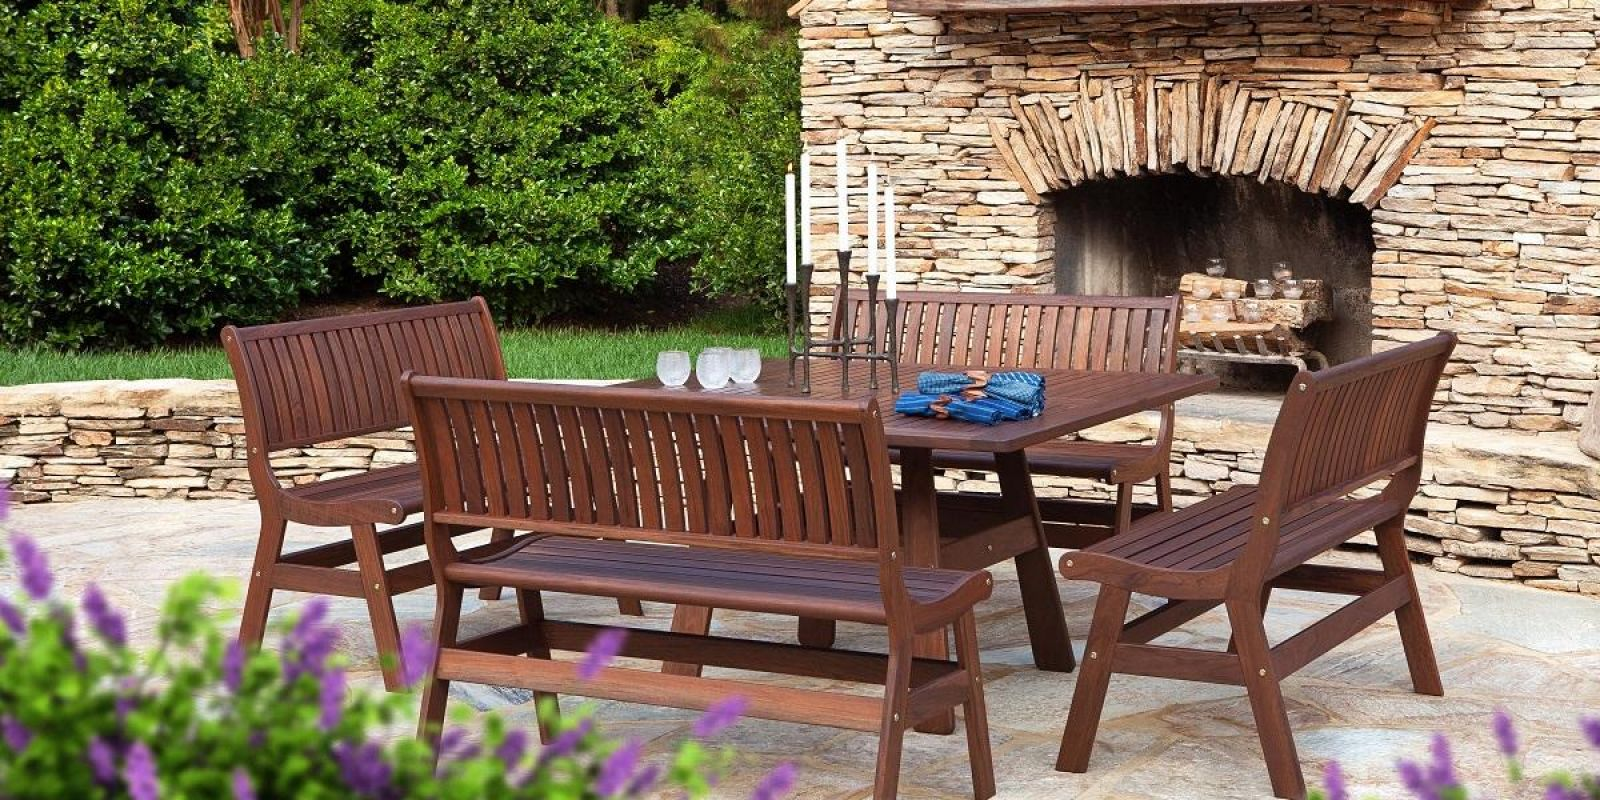 Outdoor Furniture | American Casual Living on Porch & Patio Casual Living id=36694